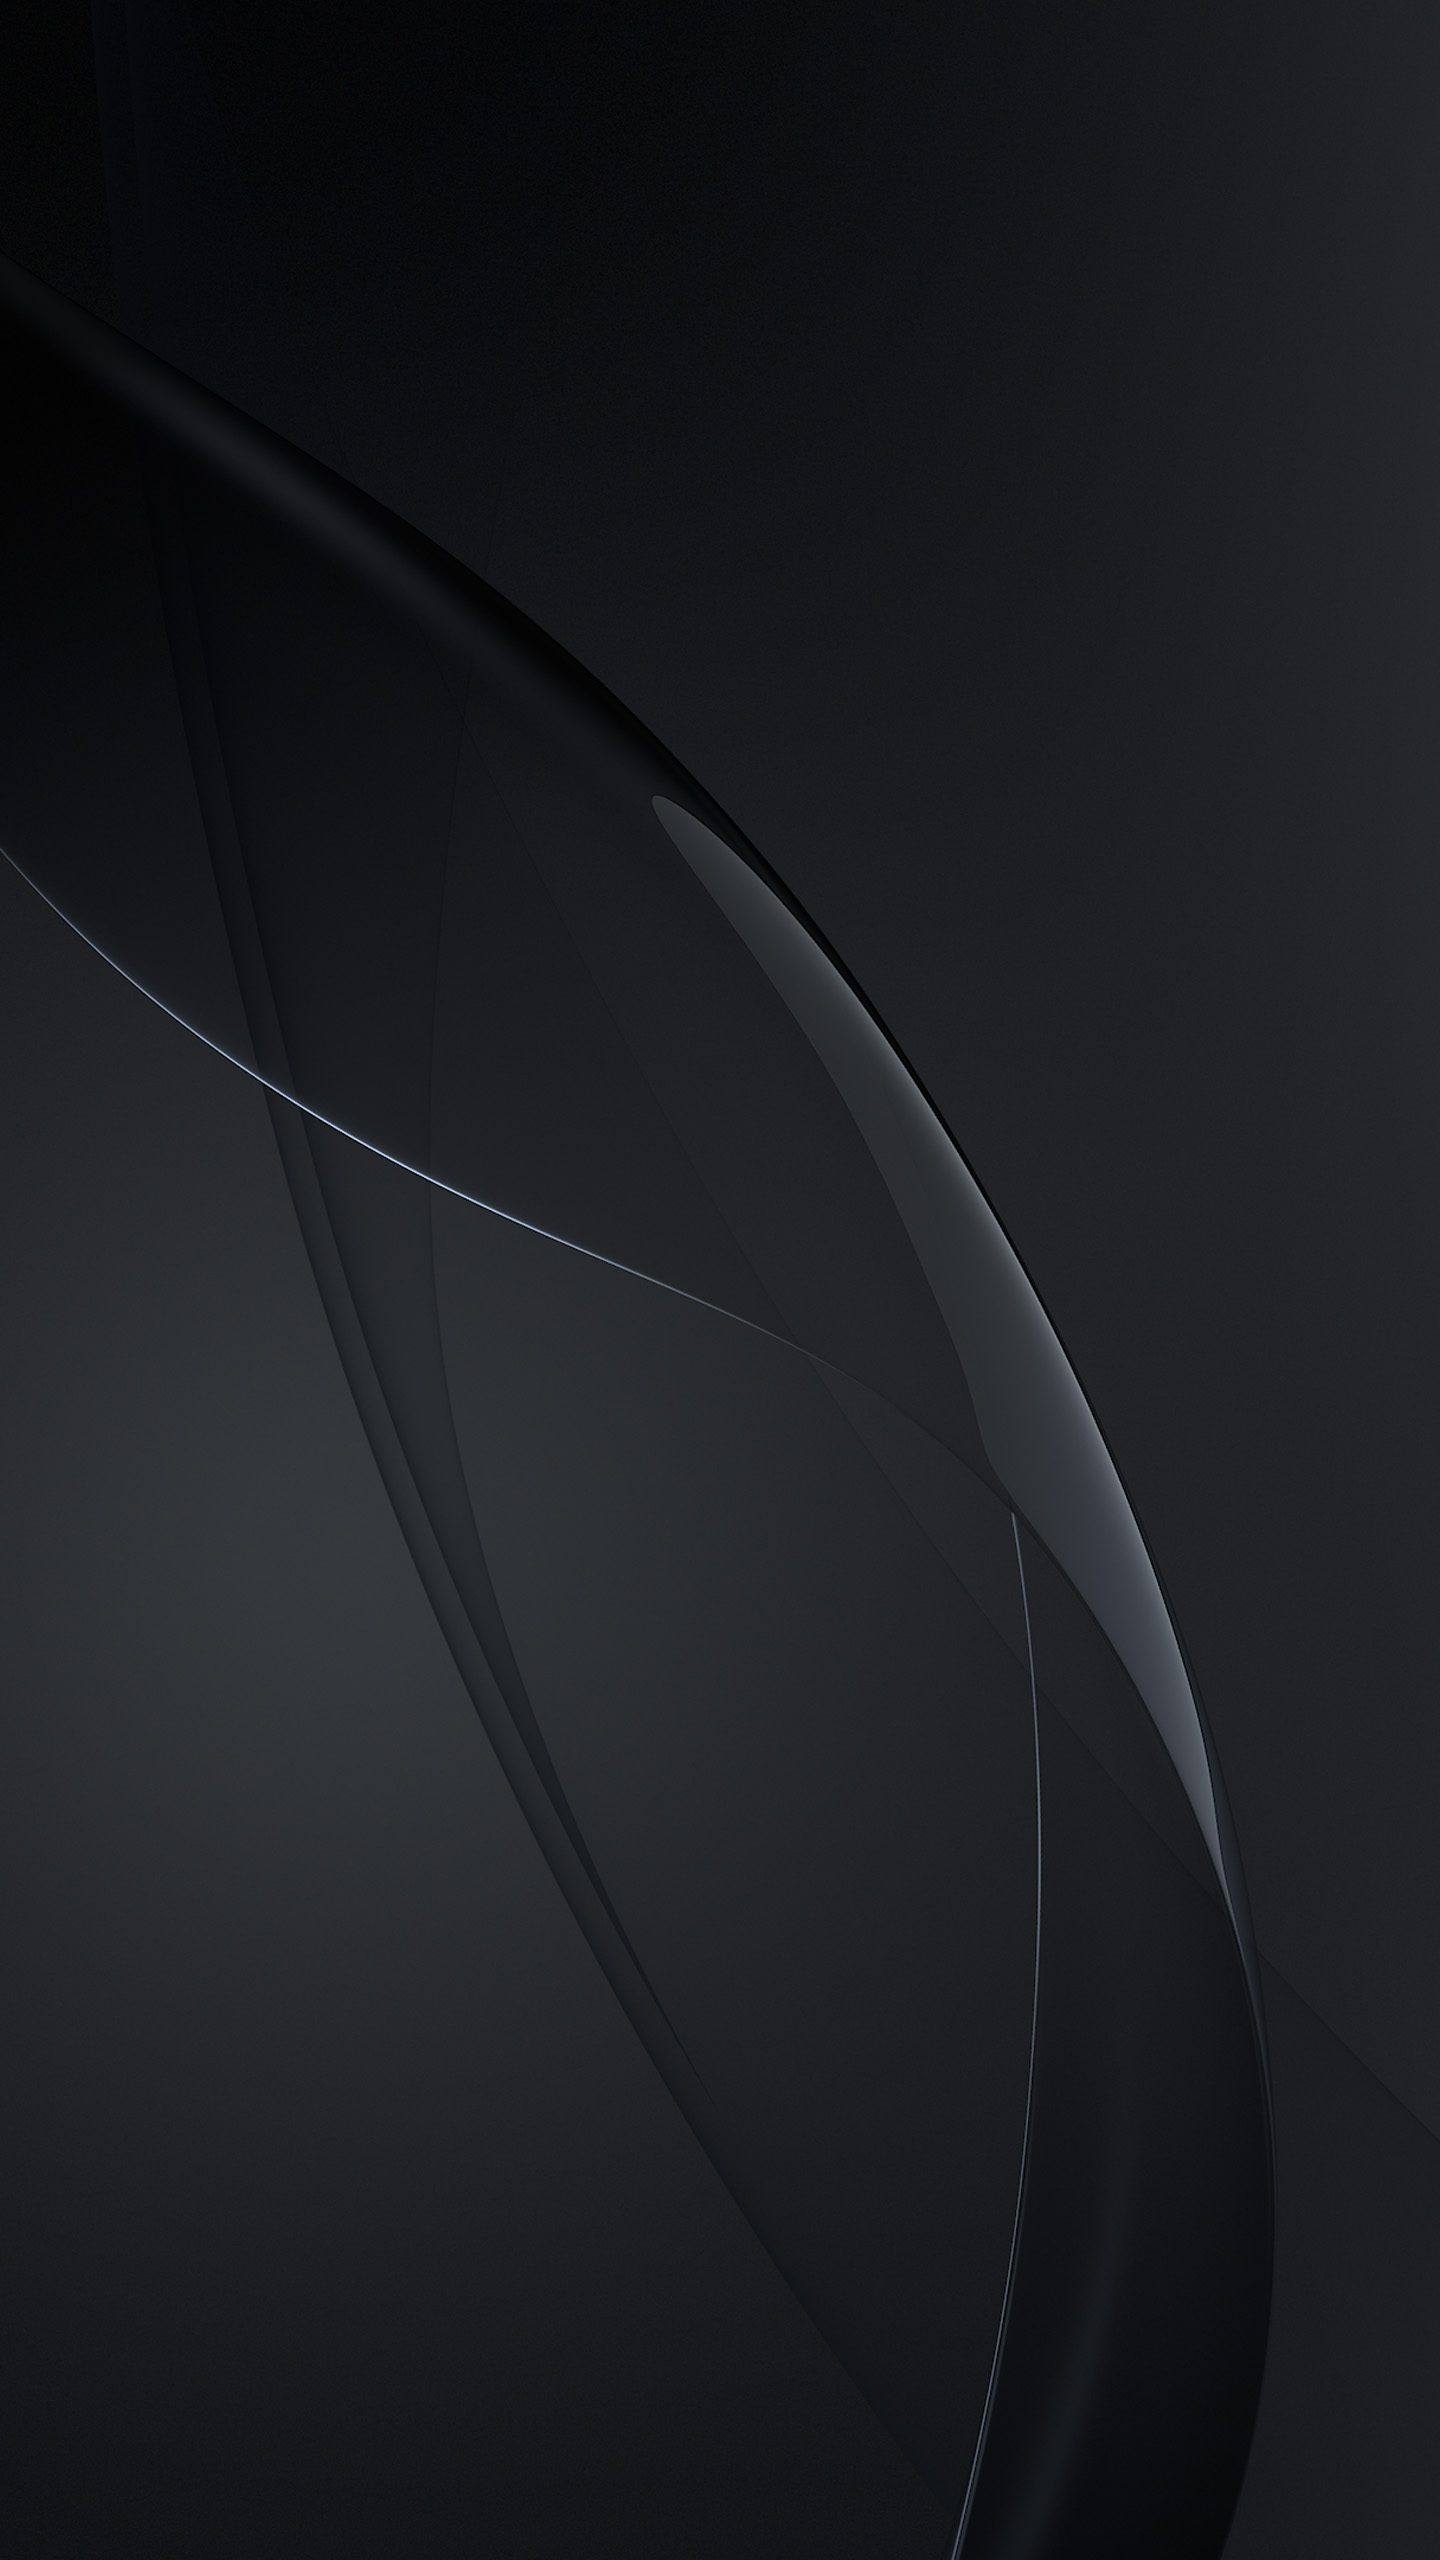 Free Download Samsung Galaxy S6 Edge Wallpaper 1440x2560 For Your Desktop Mobile Tablet Explore 41 Galaxy S6 Edge Wallpaper Samsung Galaxy S5 Wallpaper Galaxy Wallpaper For Walls Galaxy S7 Edge Wallpapers